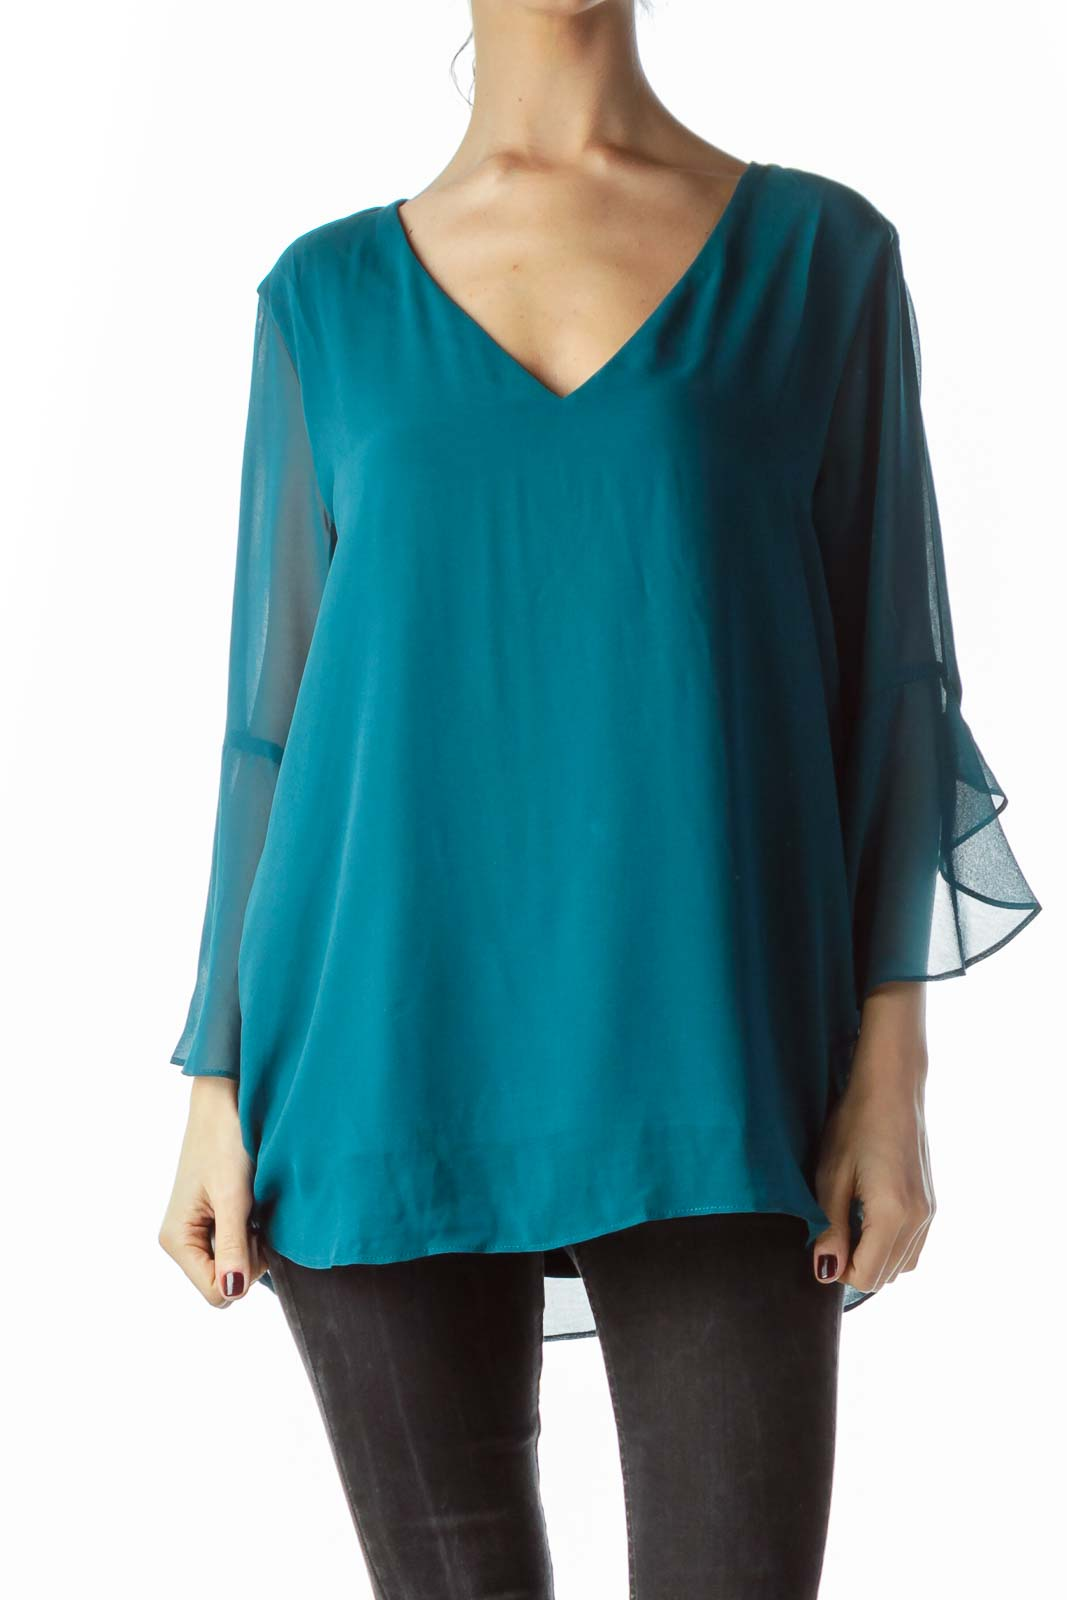 Teal Blue V-Neck Flared Blouse